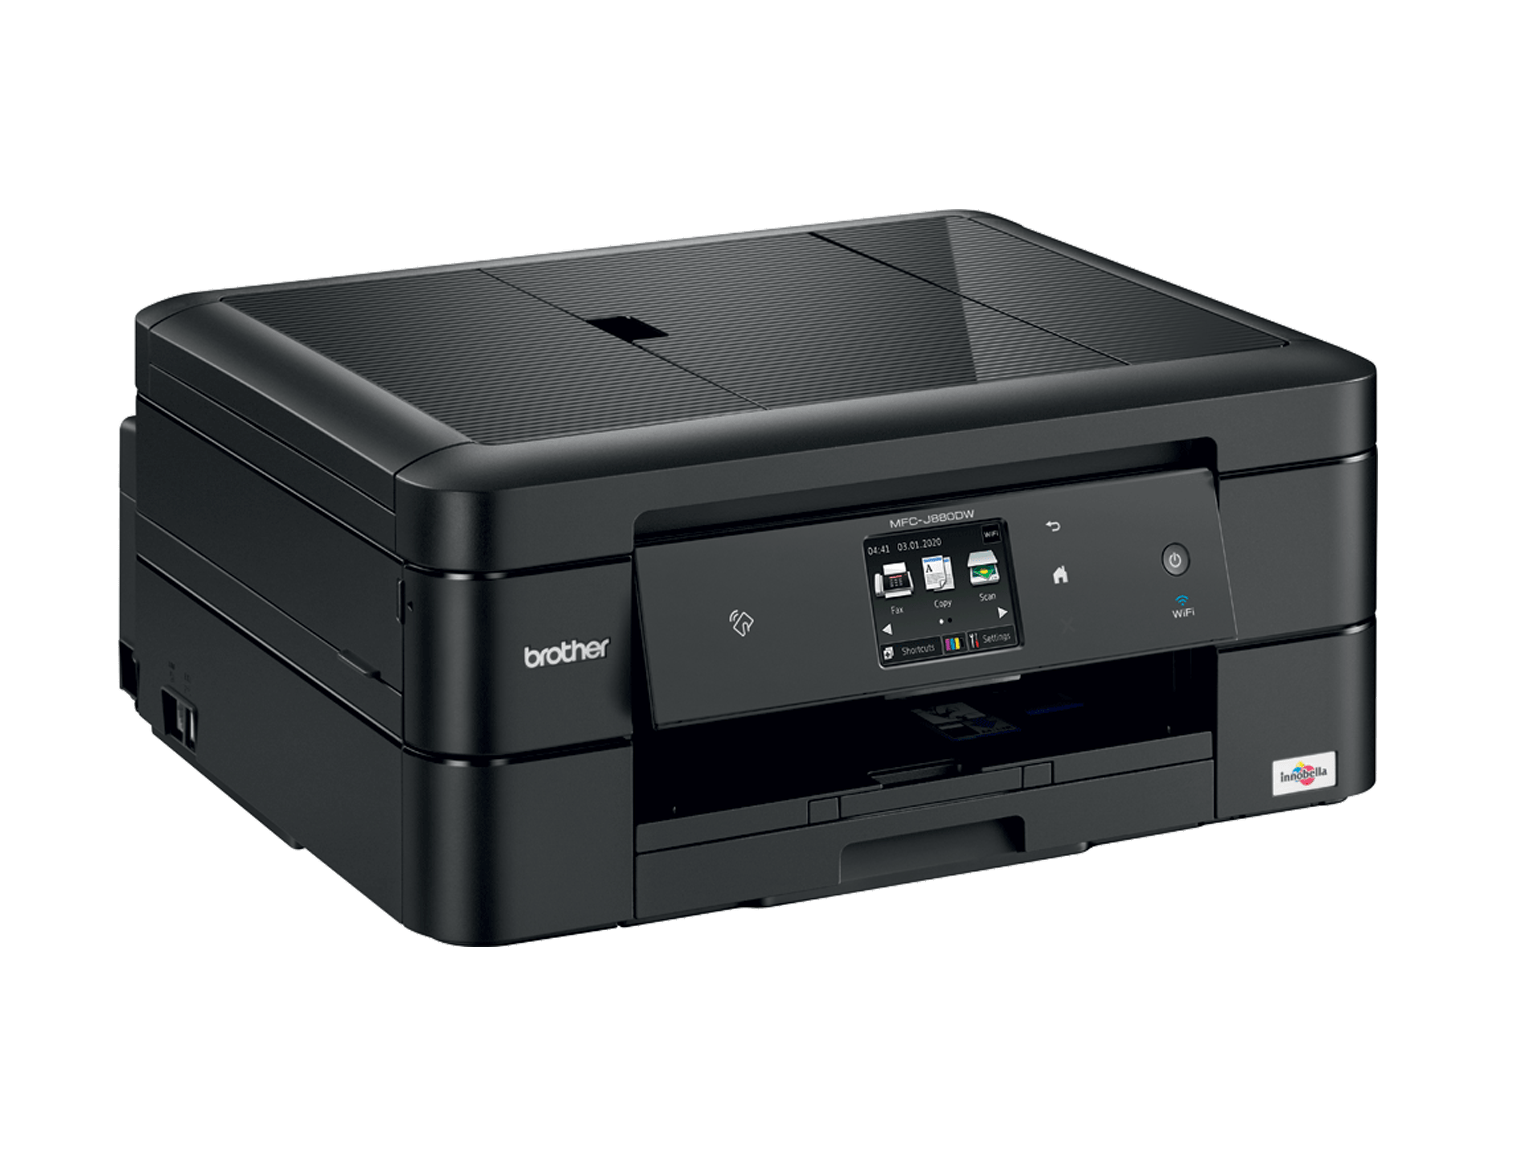 Brother inkjet printer 3/4 view